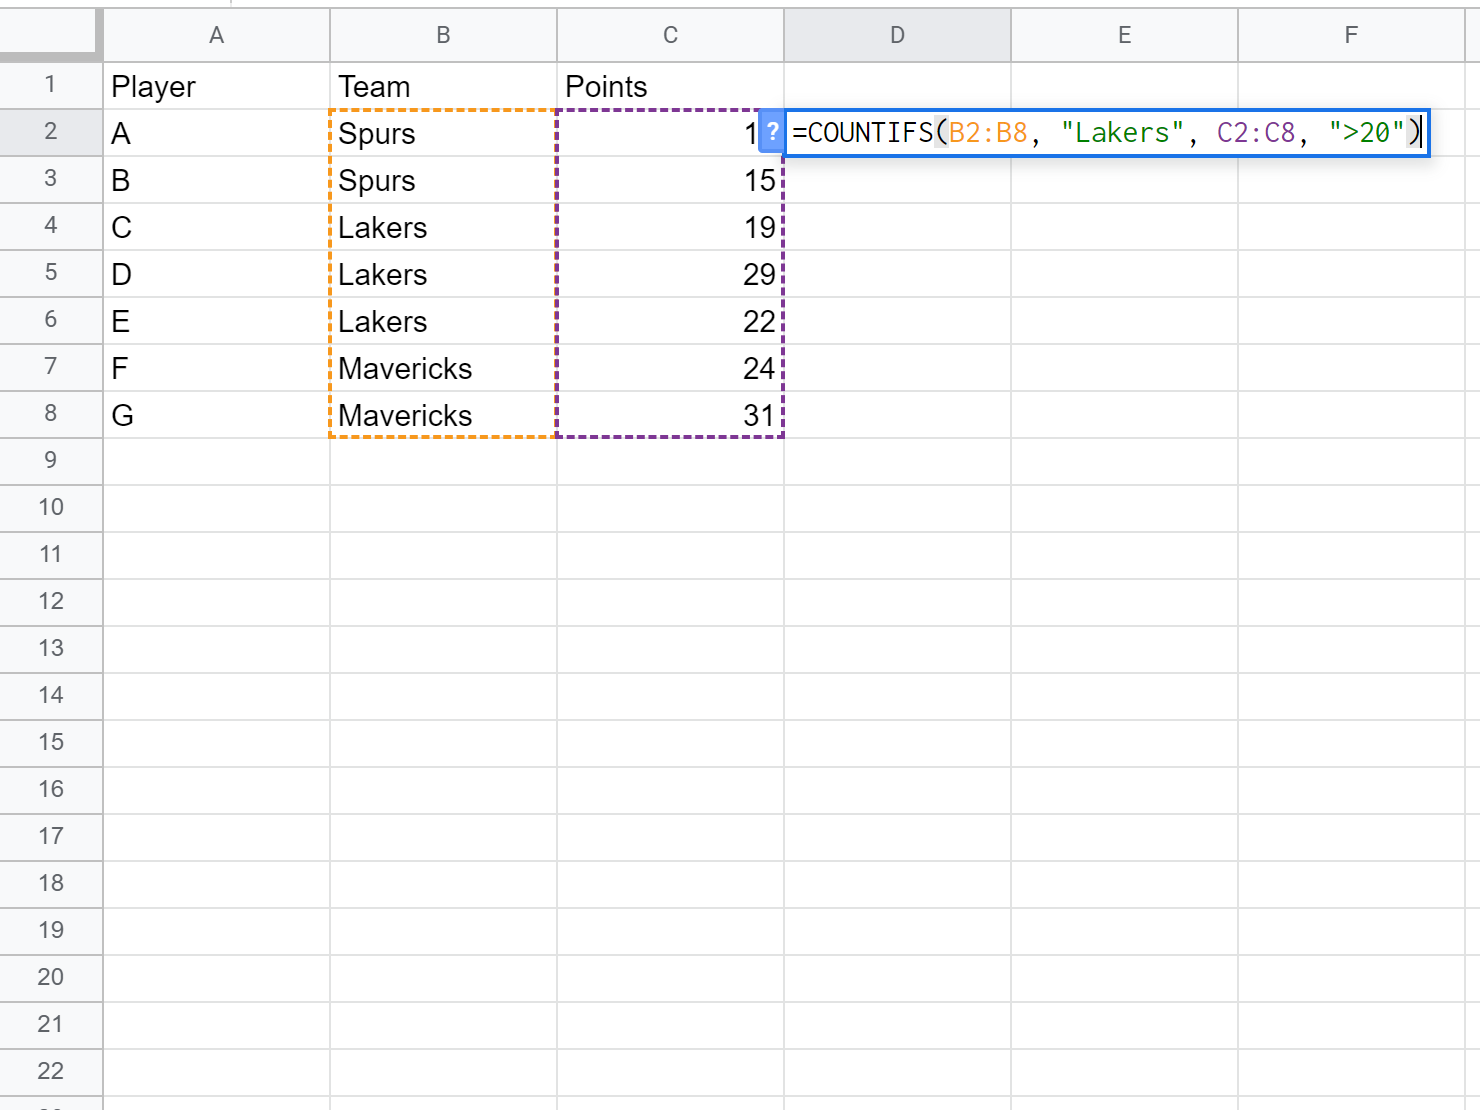 Google Sheets COUNTIF function with multiple ranges